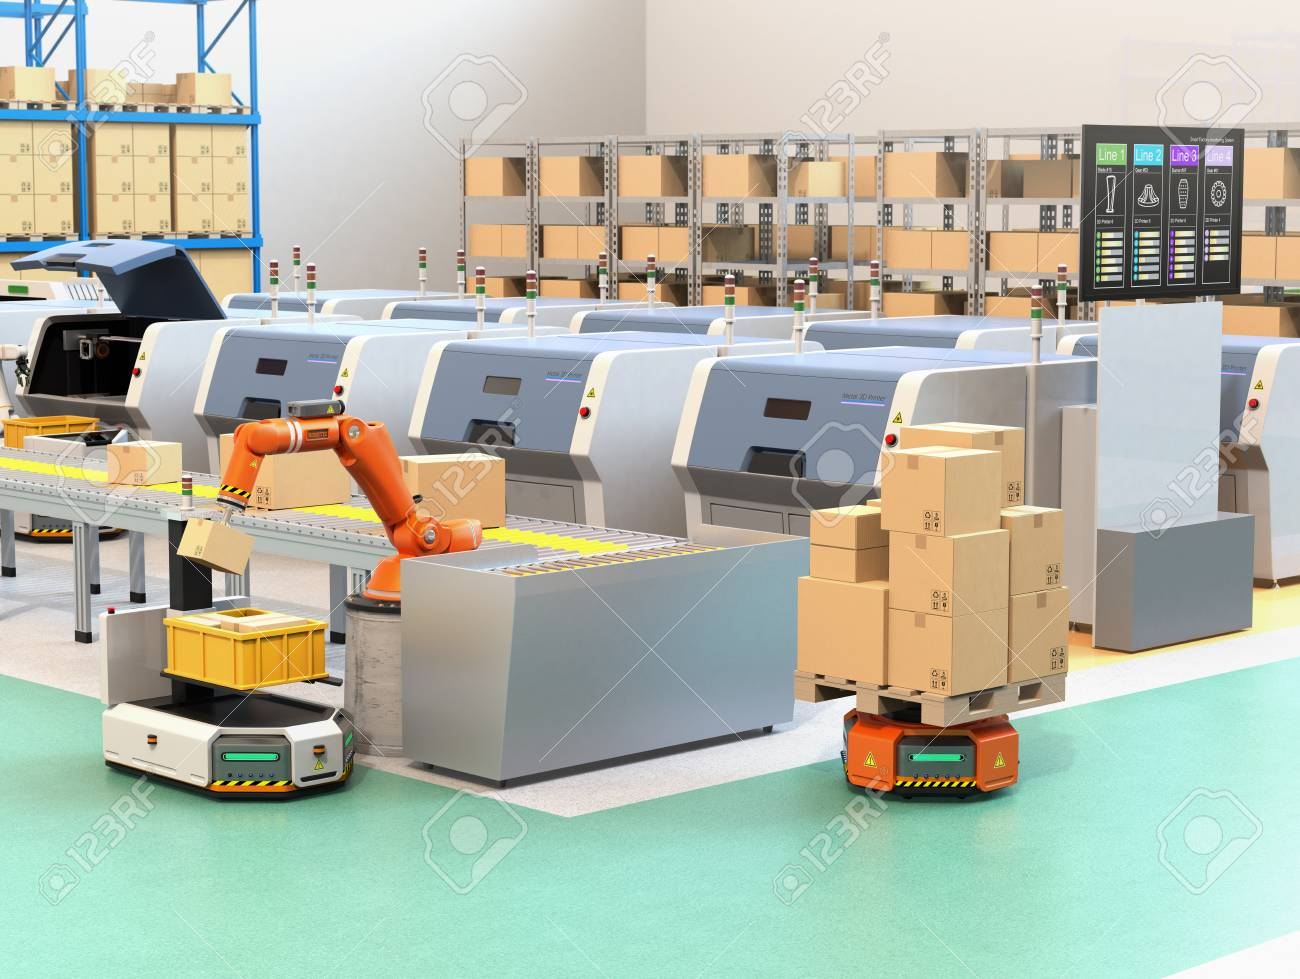 Robotic arm picking parcel from conveyor to AGV (Automatic guided vehicle). Monitor of the manufacture line showing lines' process information. 3D rendering image. - 92775413